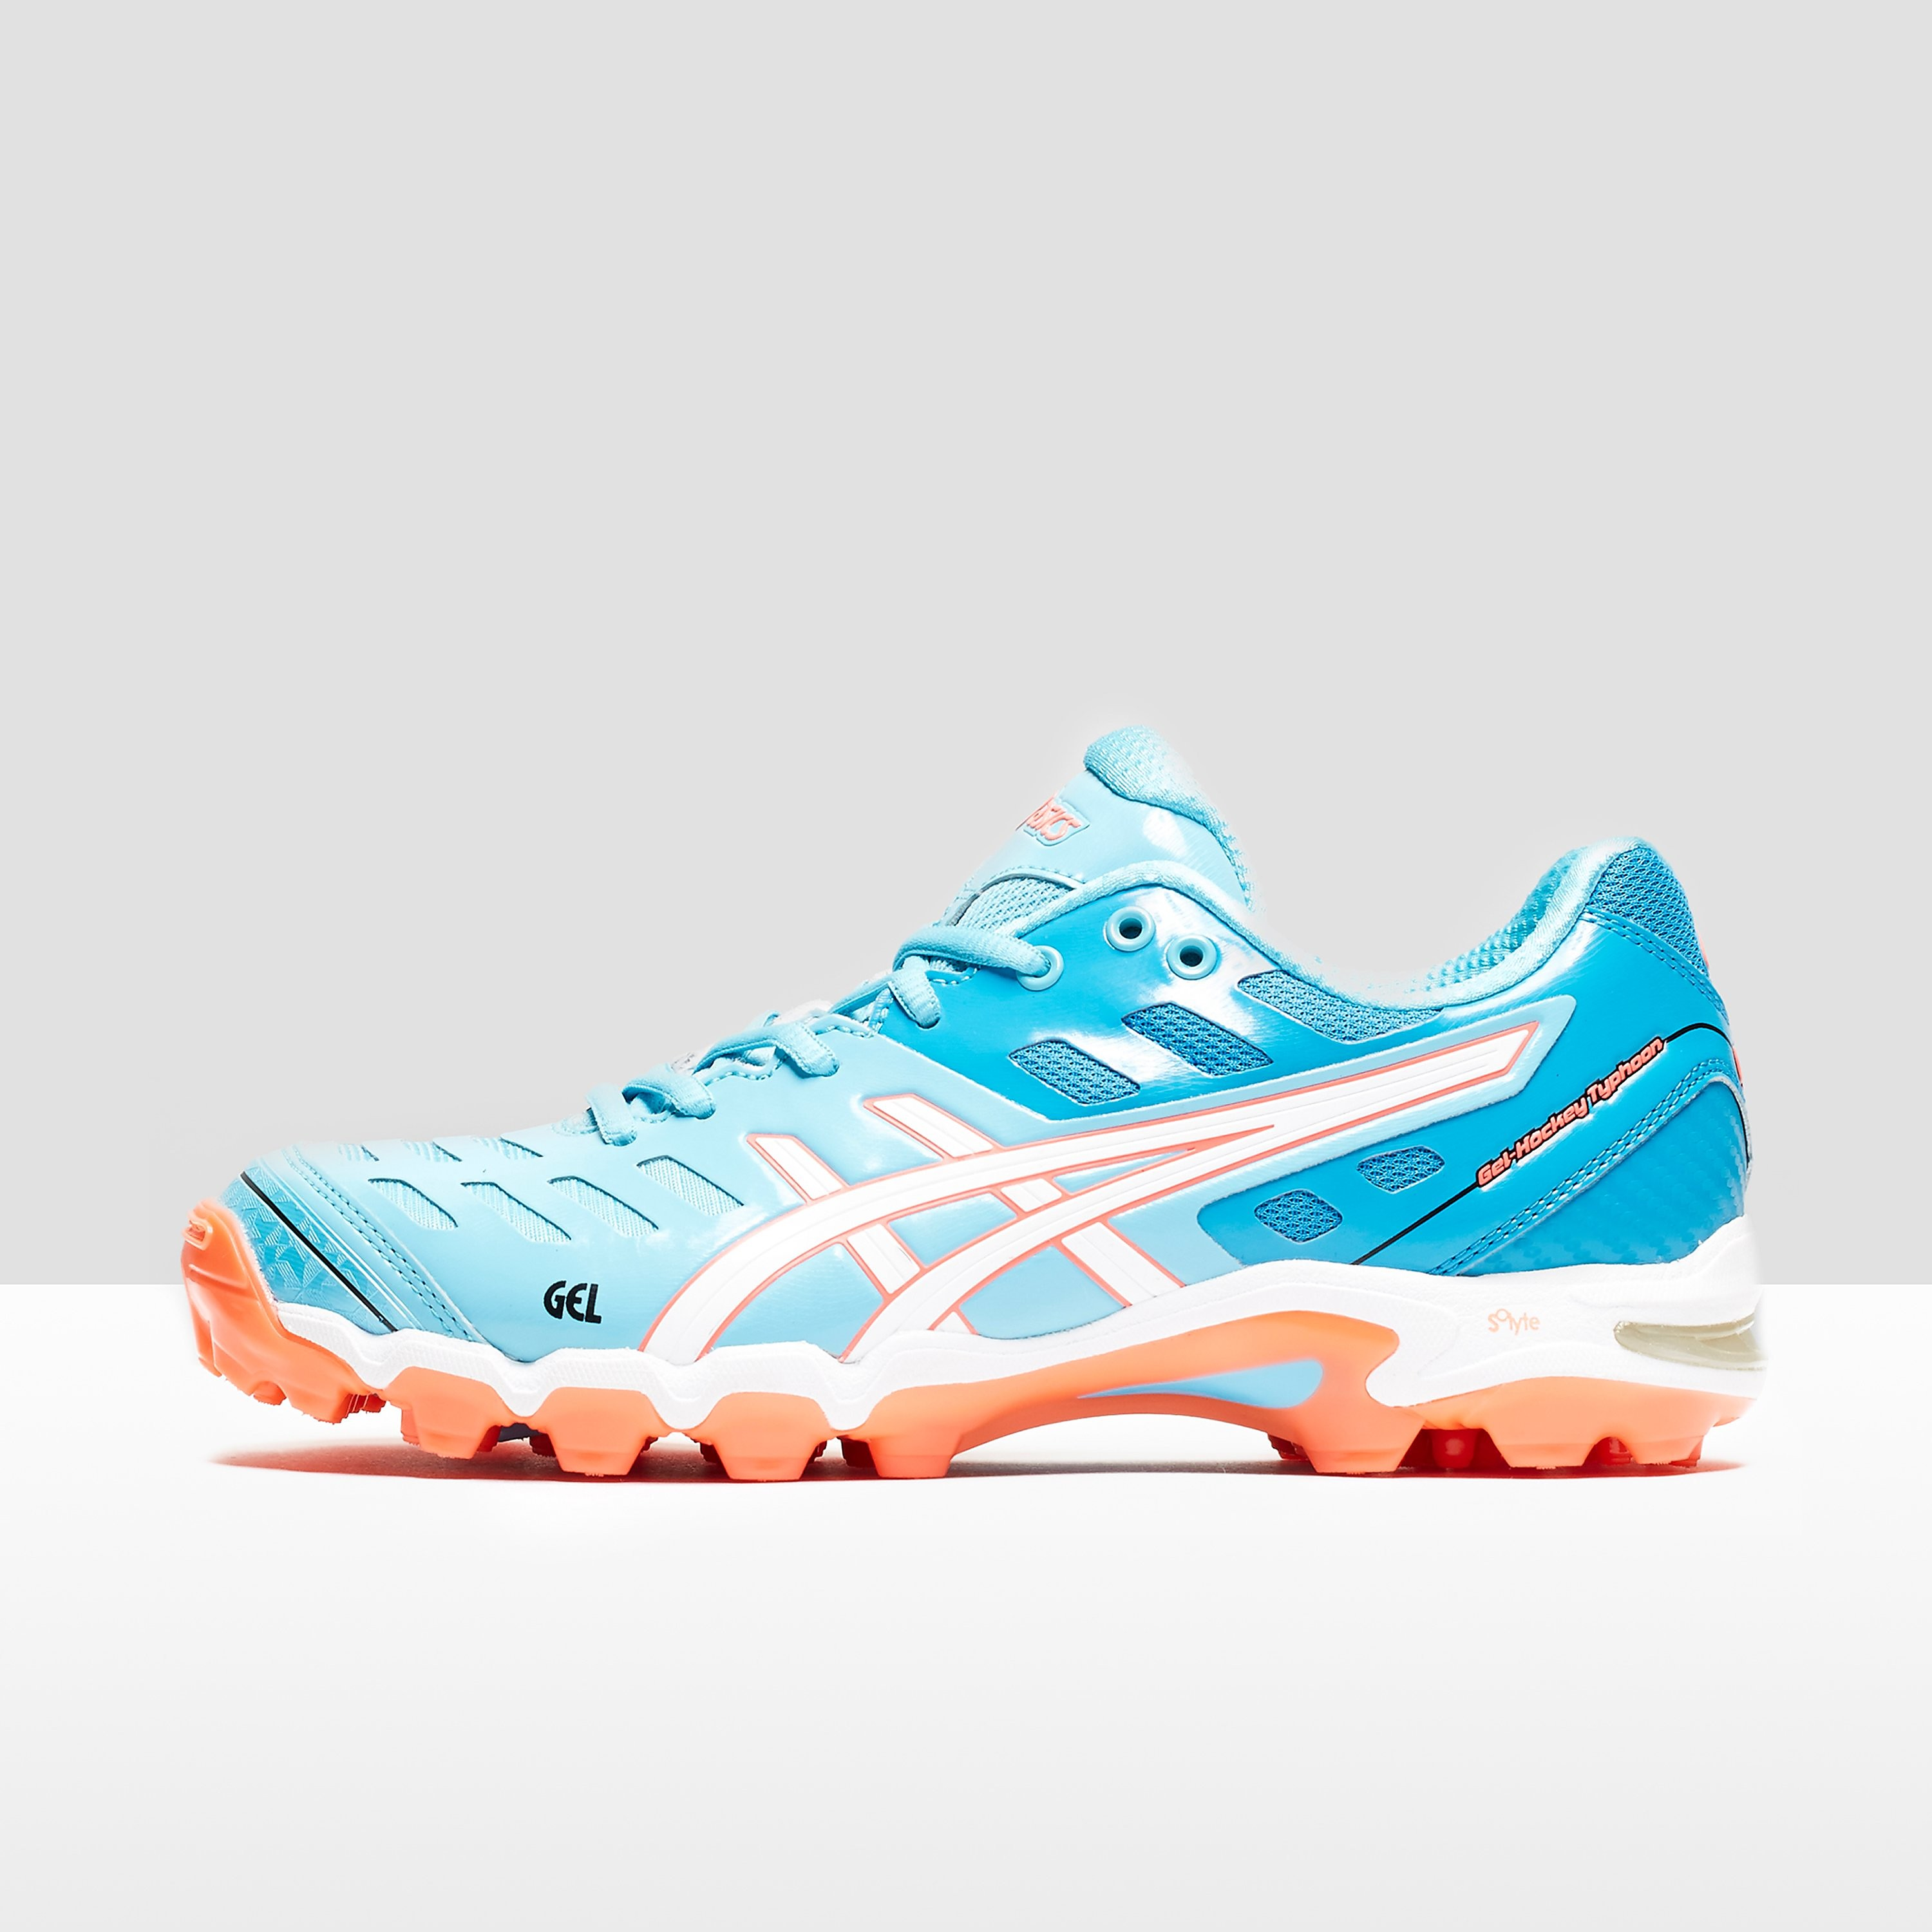 ASICS Gel-Hockey Typhoon 2 Women's Hockey Shoes